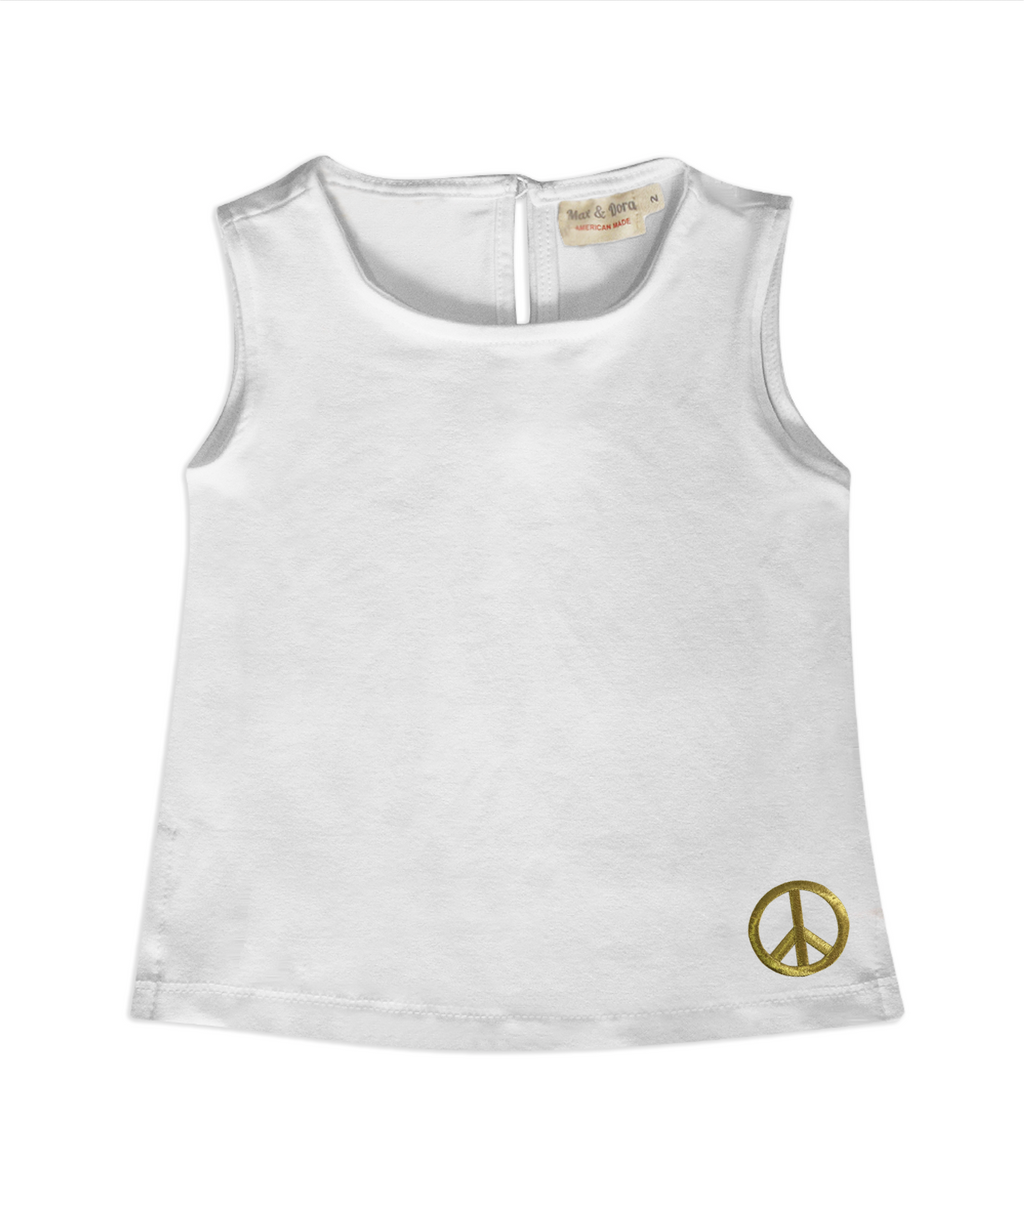 Leah White Sleeveless Jersey Top With Gold Peace Sign